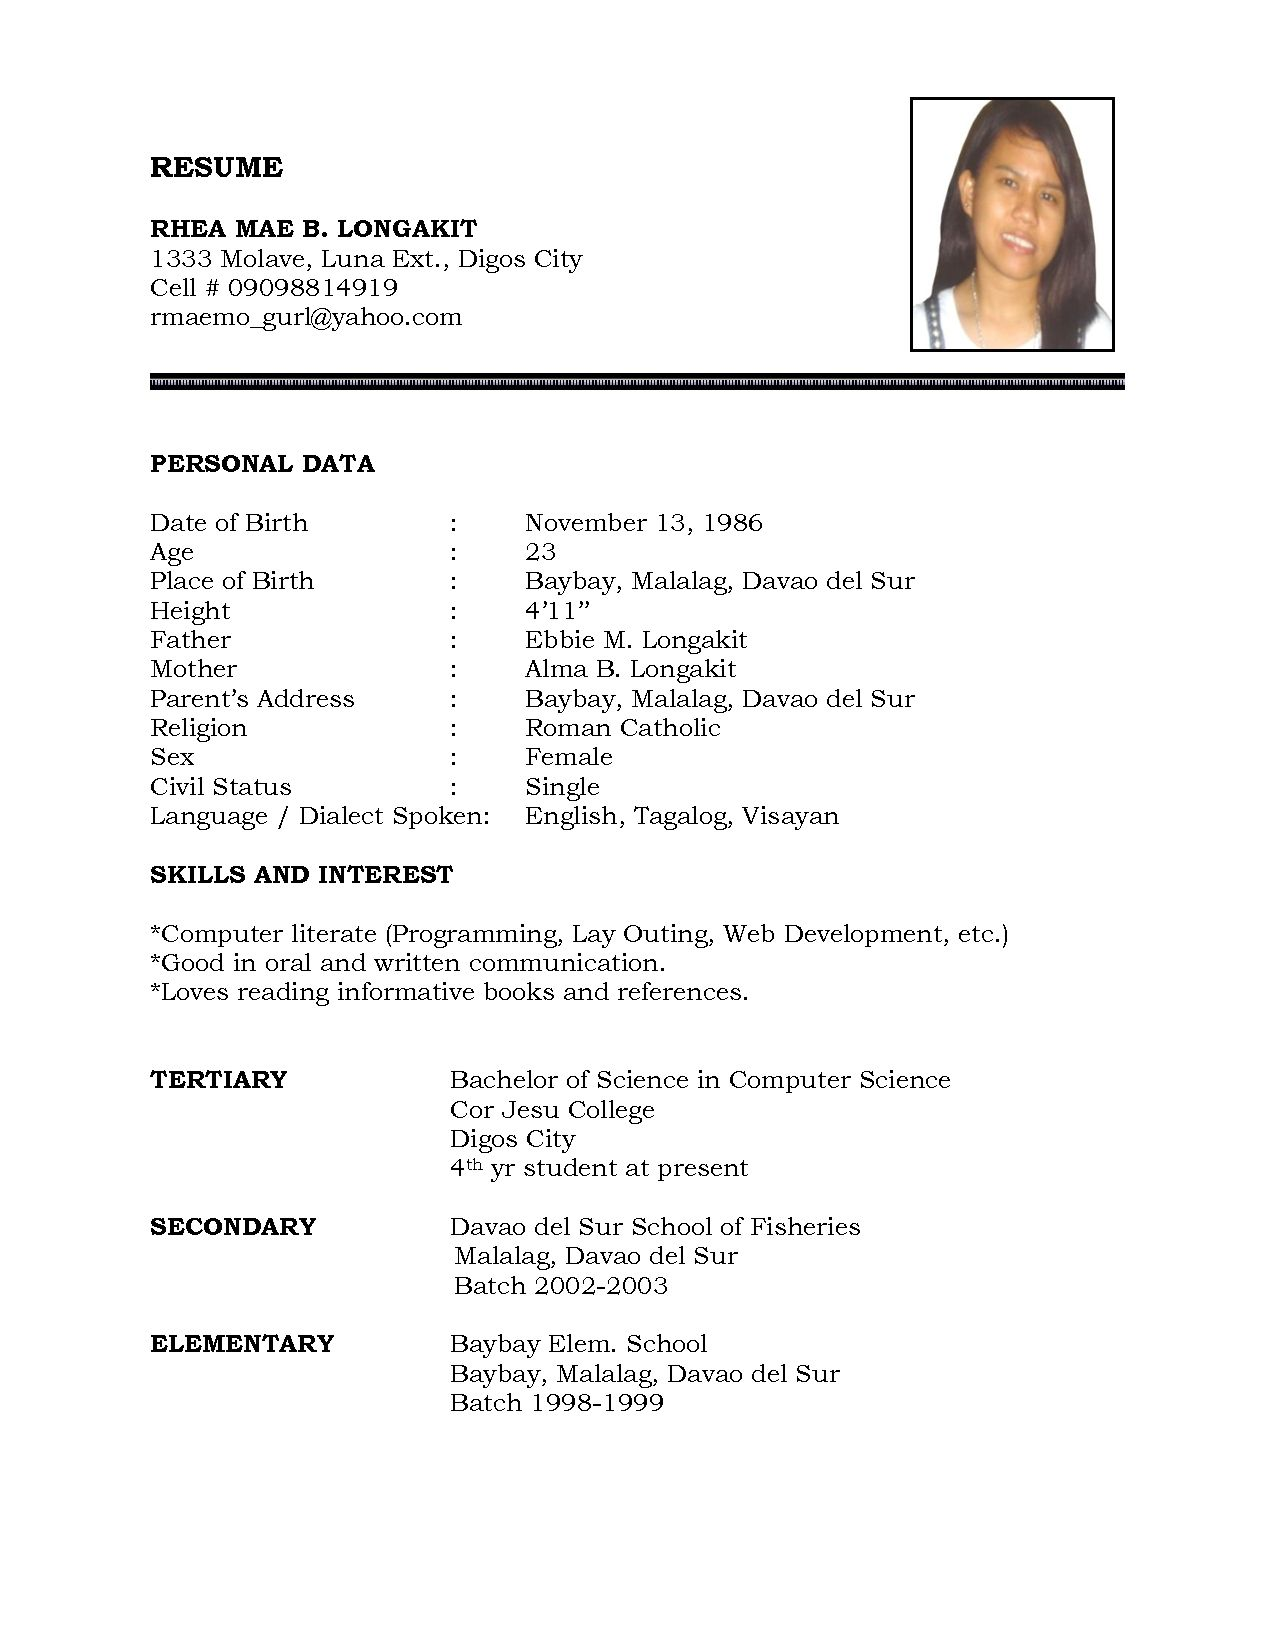 Resume Sample Simple DeEAF The Simple Format Of Resume For Job